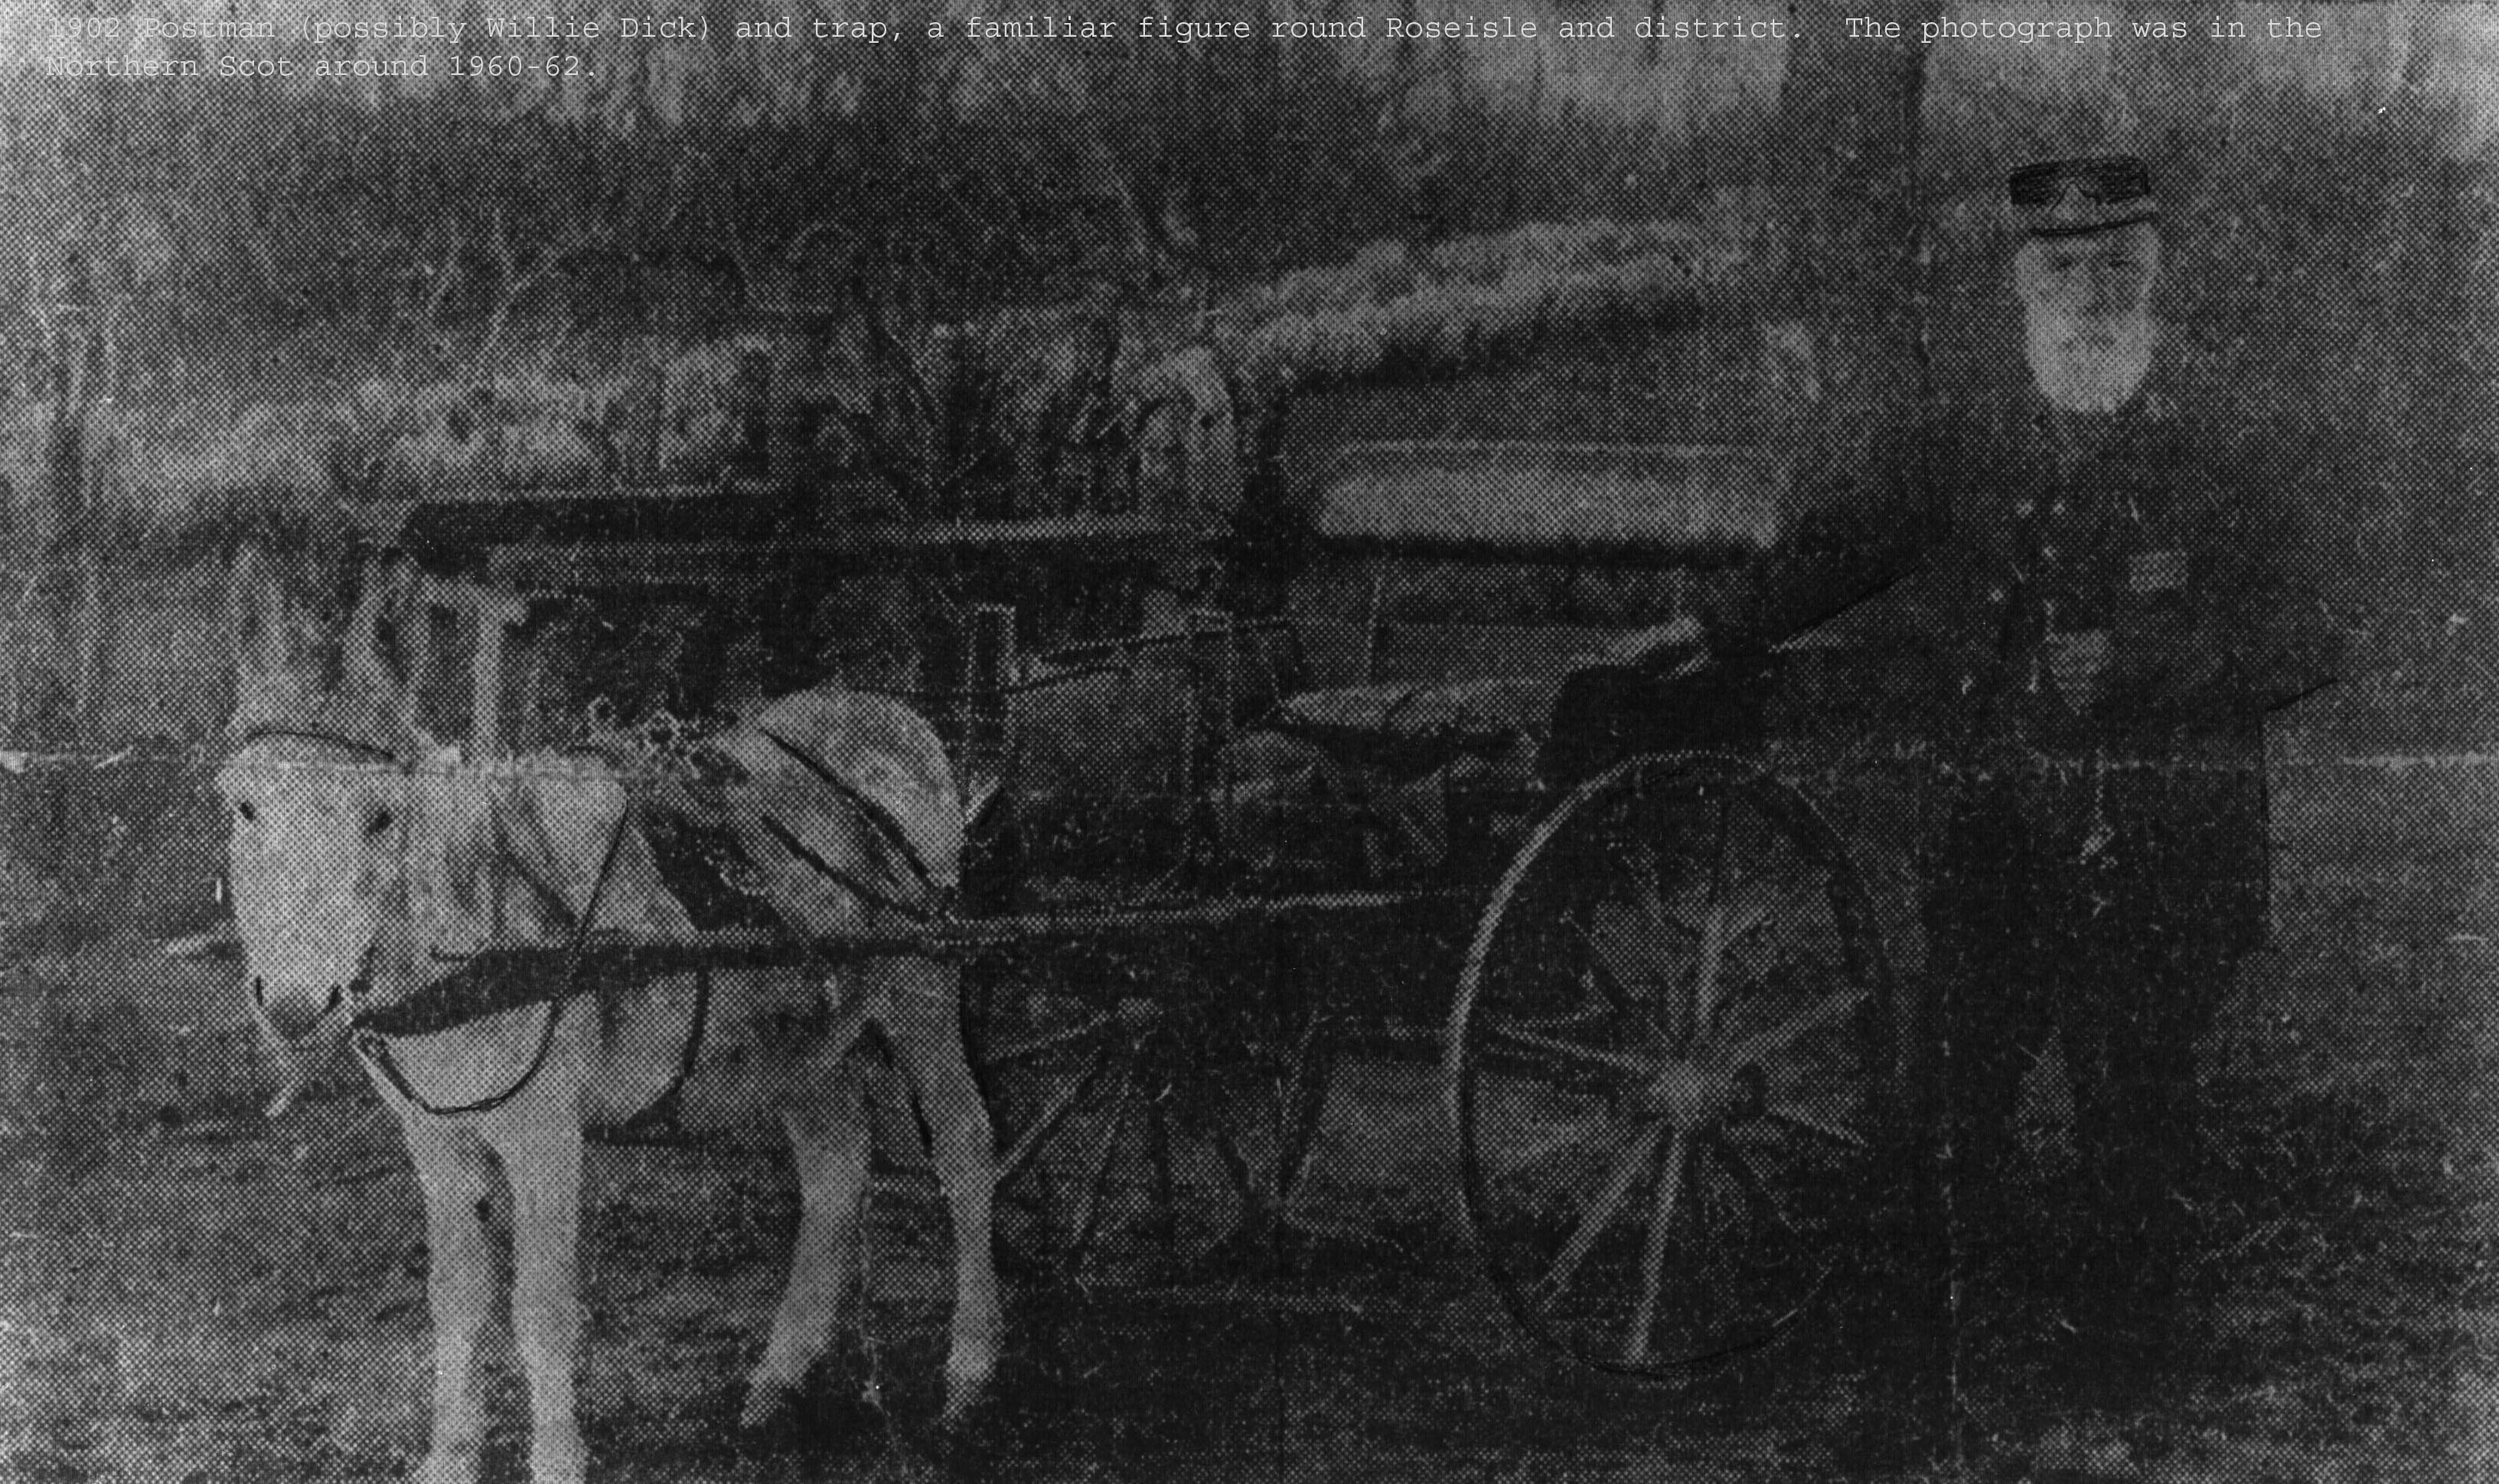 1914 - William Dick rural postman for Burghead, Hopeman & Roseisle who retired 1914 after 30 years service covering at least 117000 miles. Faithful 'Ned' deserved a rest !